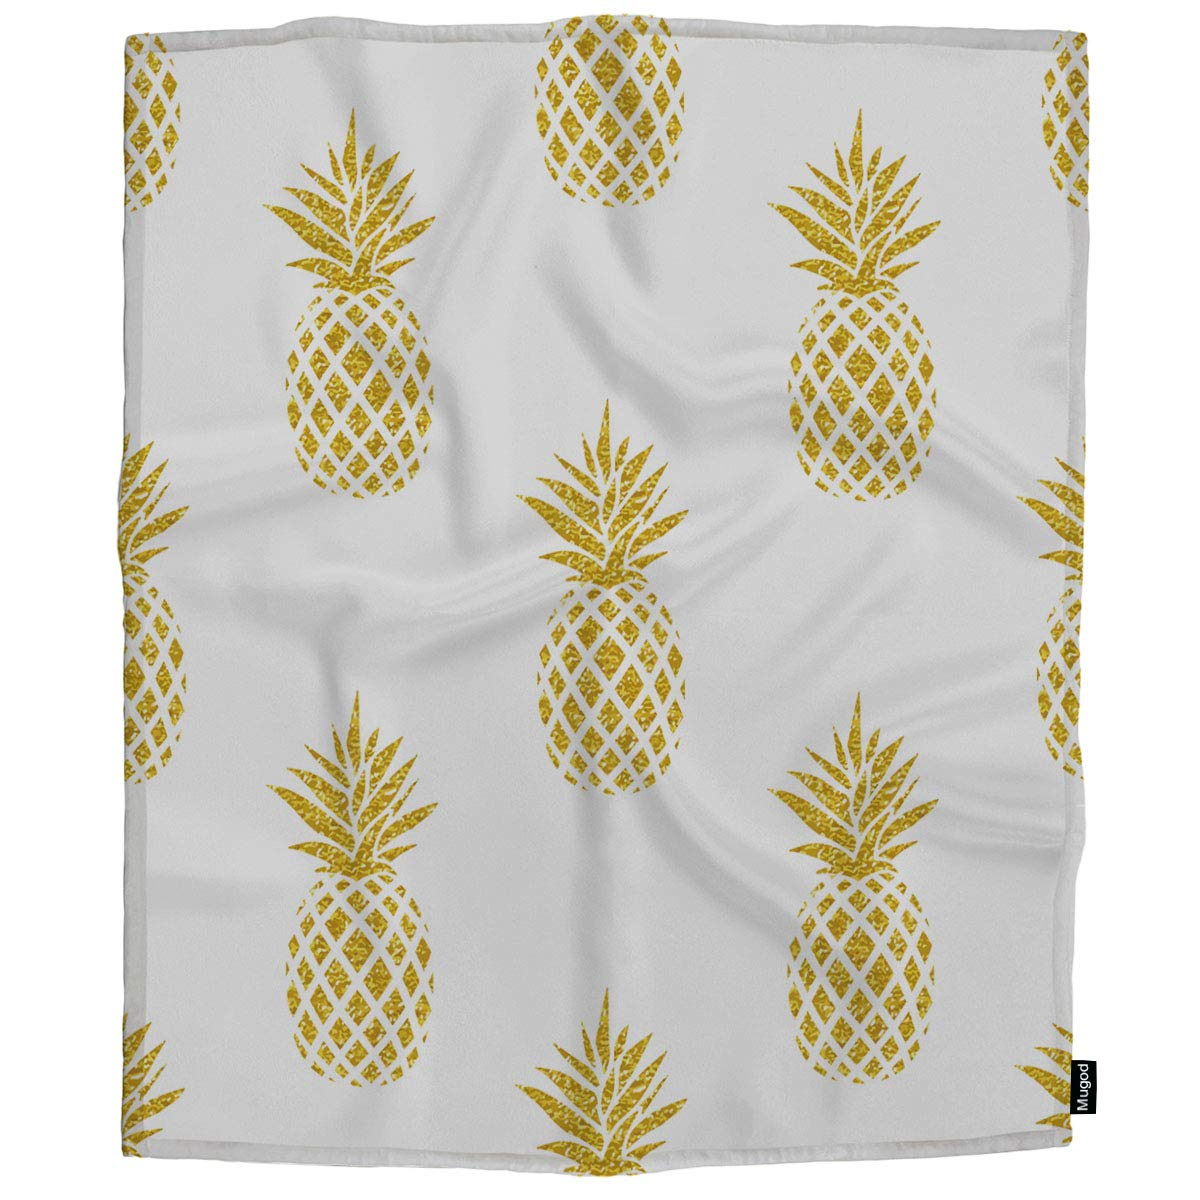 Mugod Pineapple Throw Blanket Seamless Summer Gold Pineapple on White Decorative Soft Warm Cozy Flannel Plush Throws Blankets for Baby Toddler Dog Cat 30 X 40 Inch